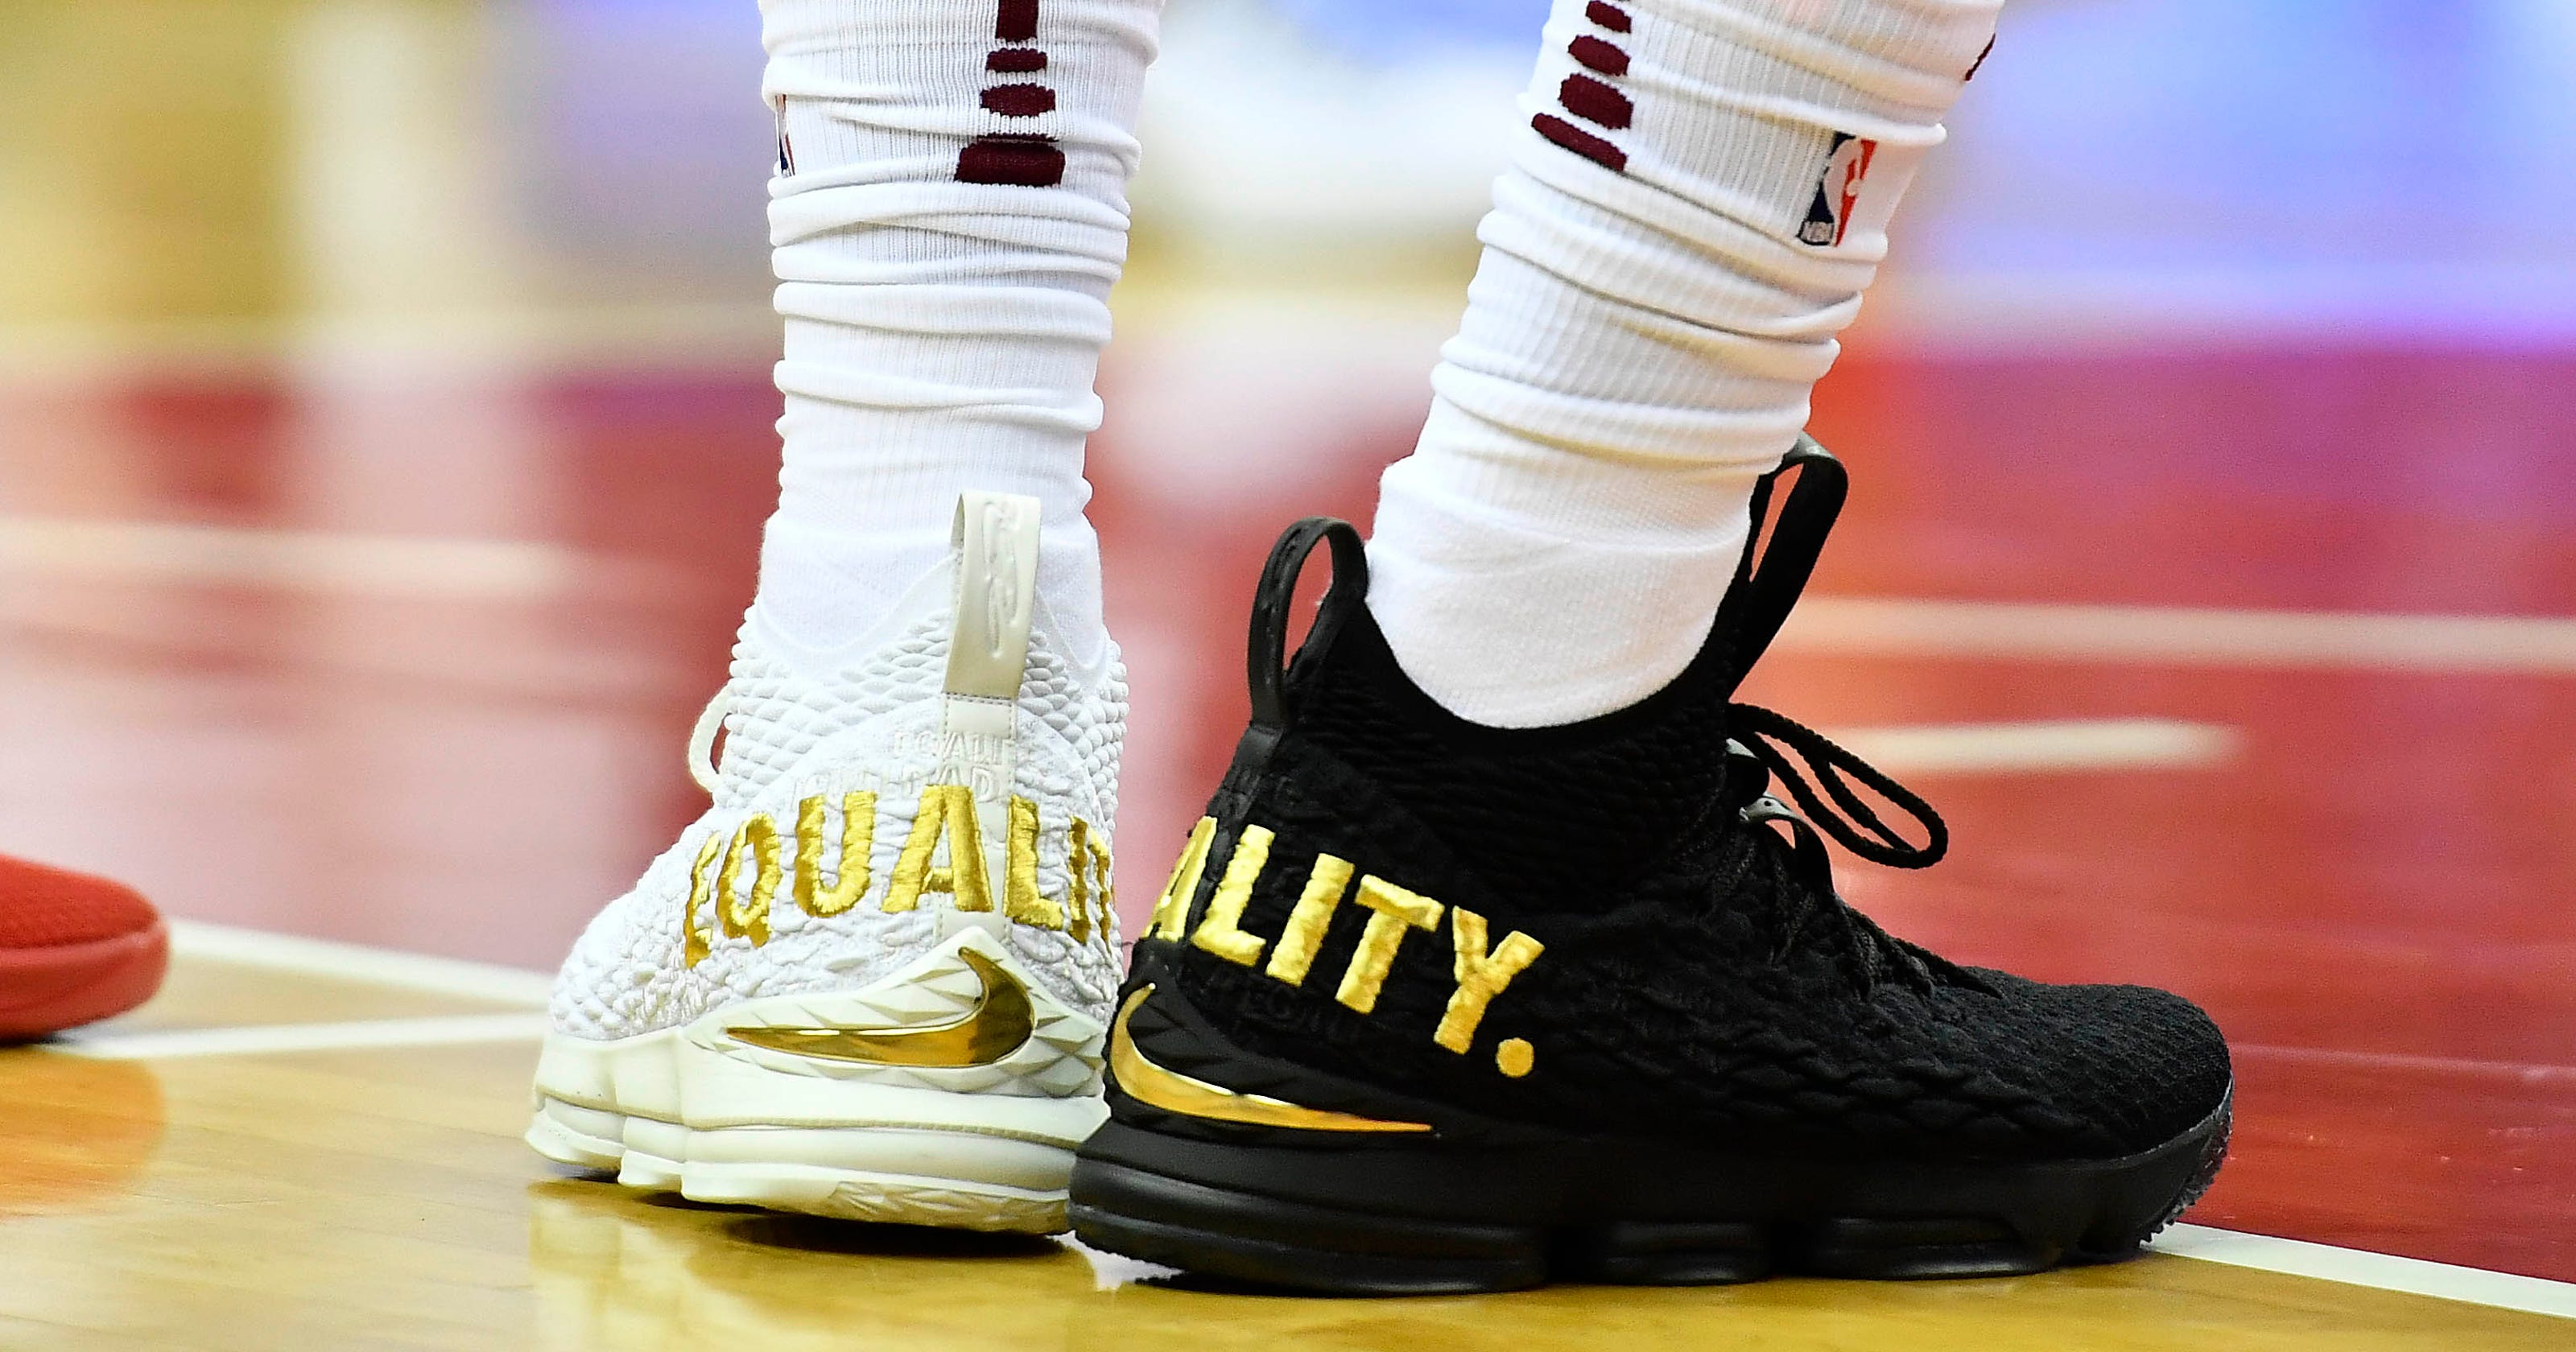 on sale 03113 17516 LeBron James makes statement with  Equality  sneakers worn in D.C.